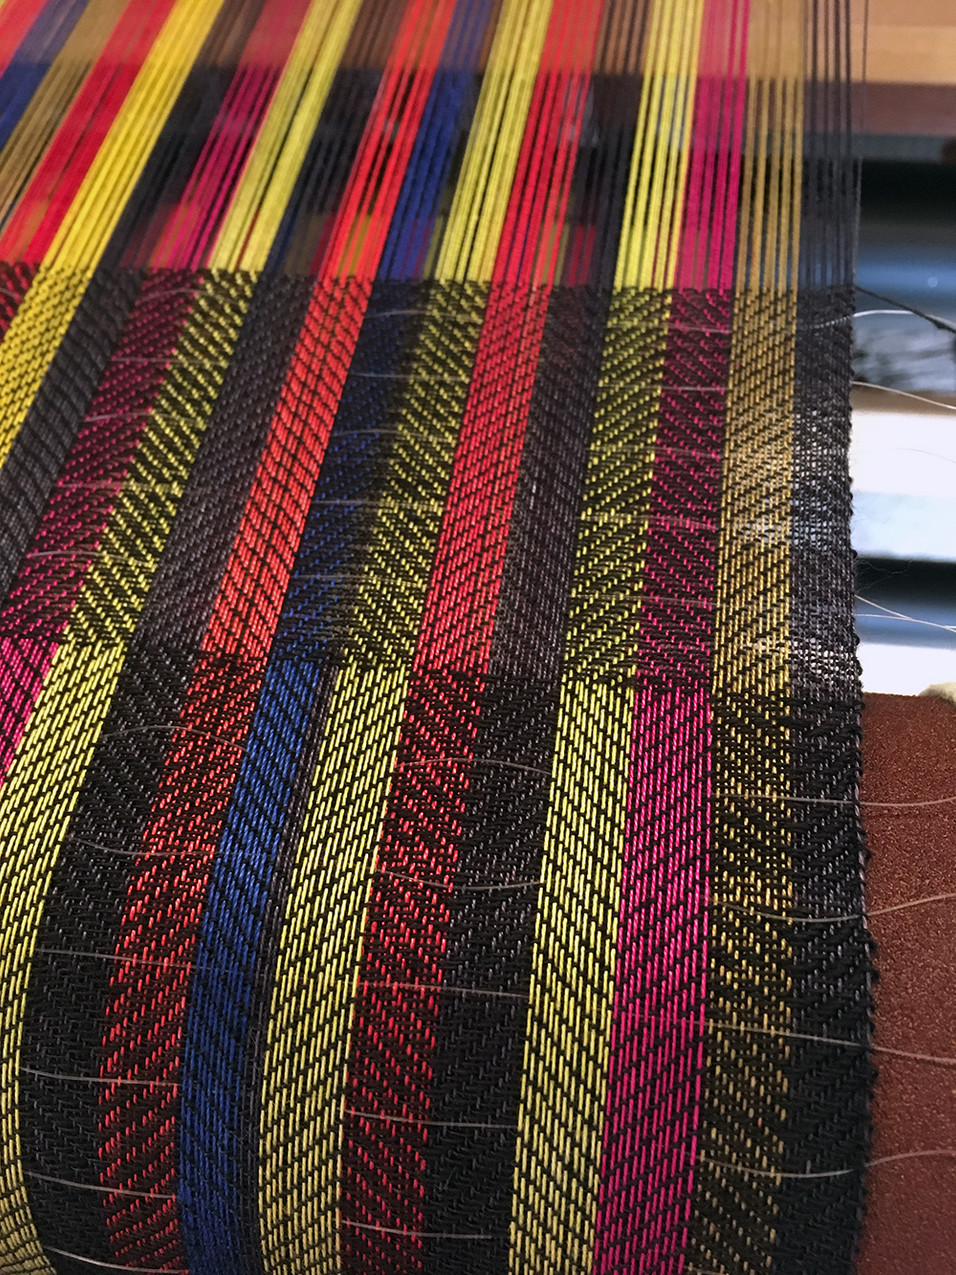 with ties on loom